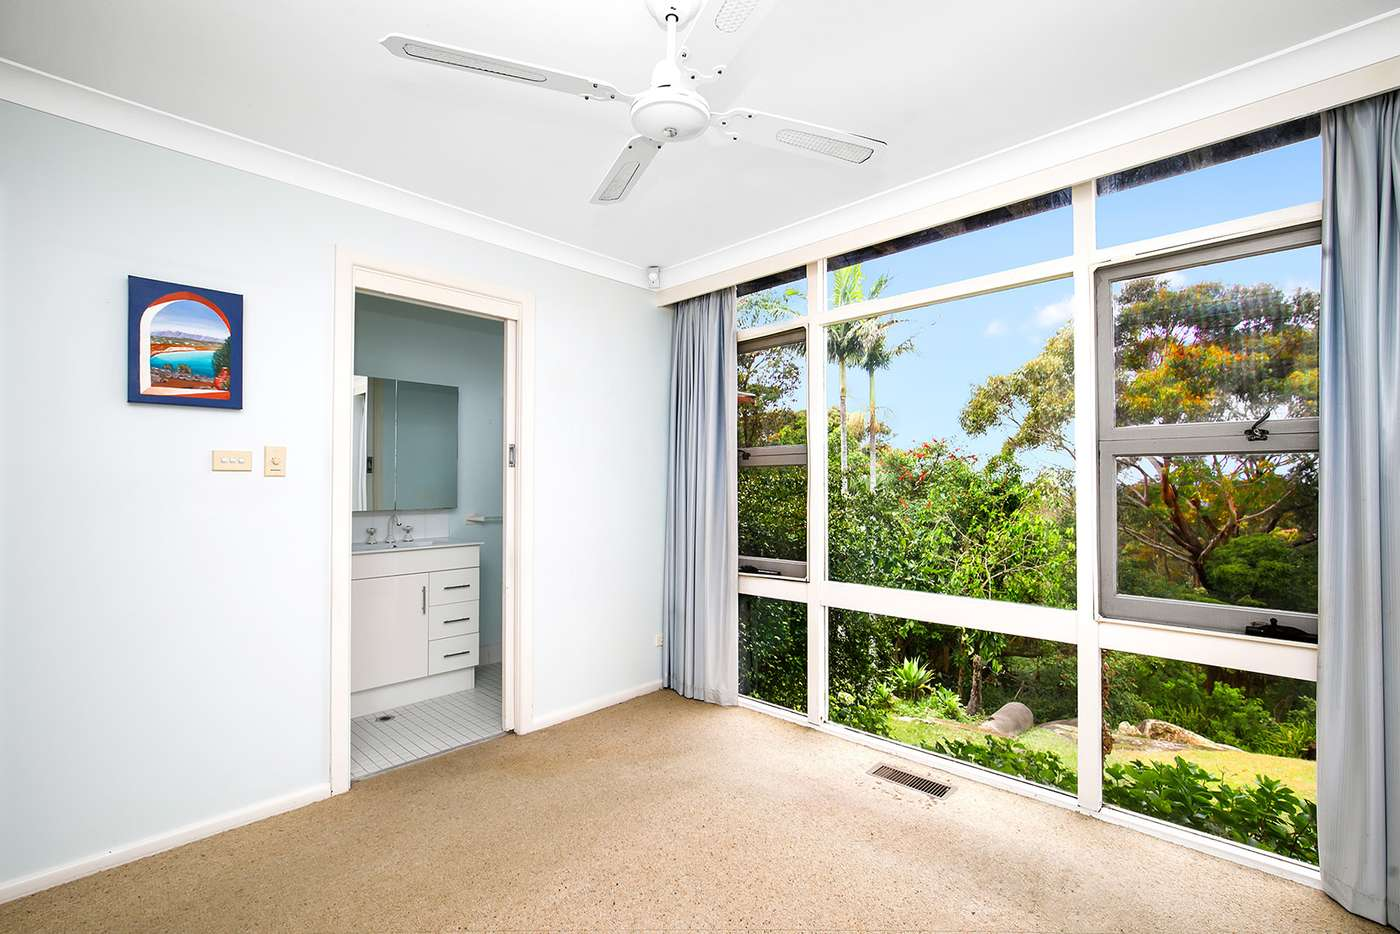 Sixth view of Homely house listing, 53 Mary Street, Beacon Hill NSW 2100